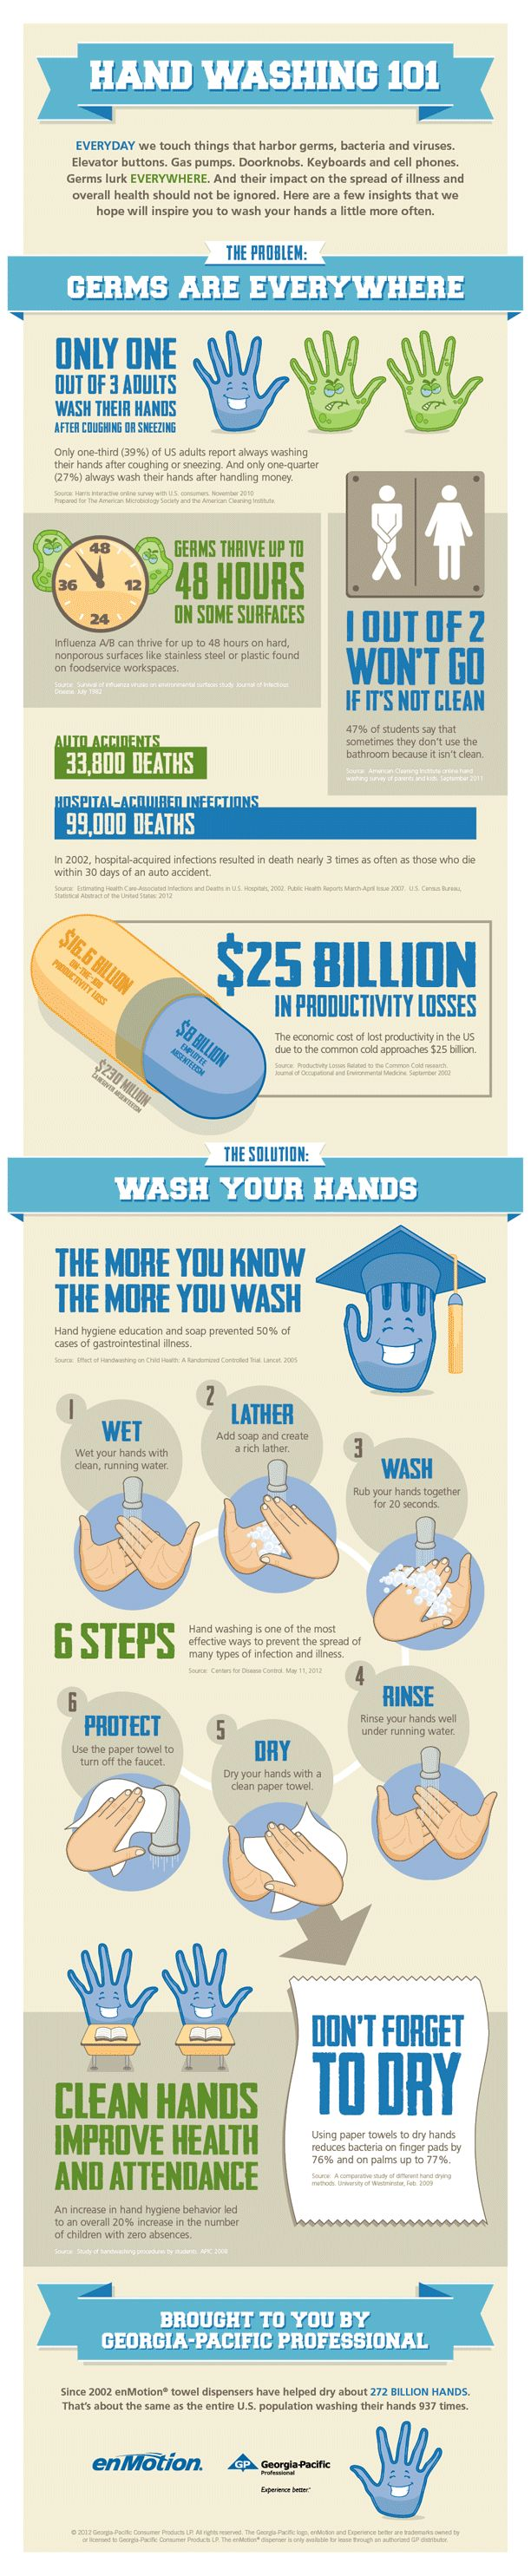 Hand Washing 101, your first line of defense against the flu.